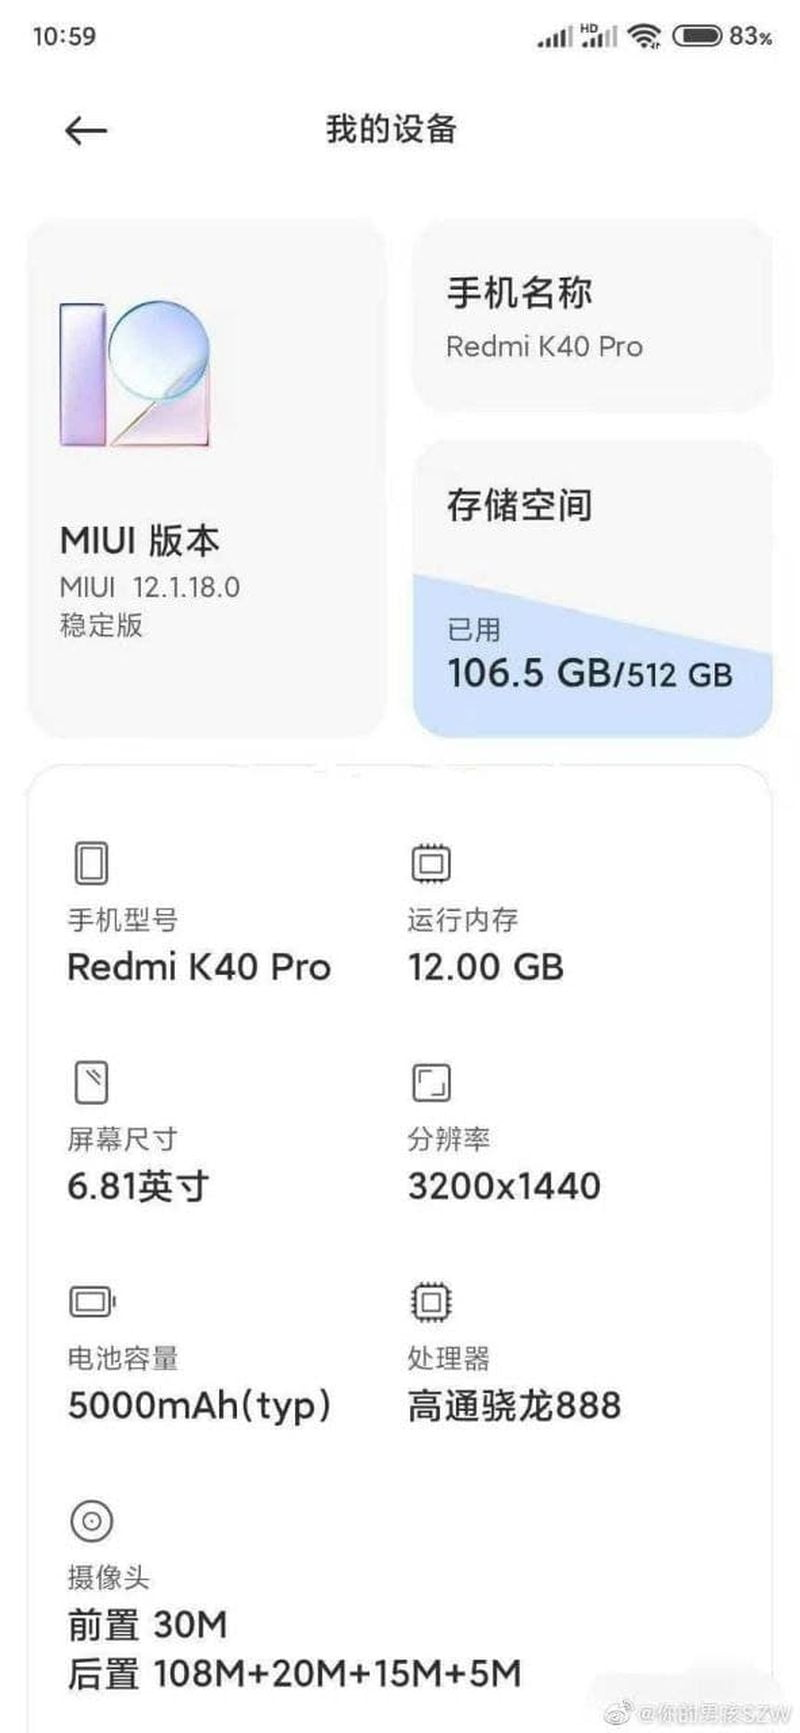 Xiaomi Redmi K40 Pro specs and features leaked